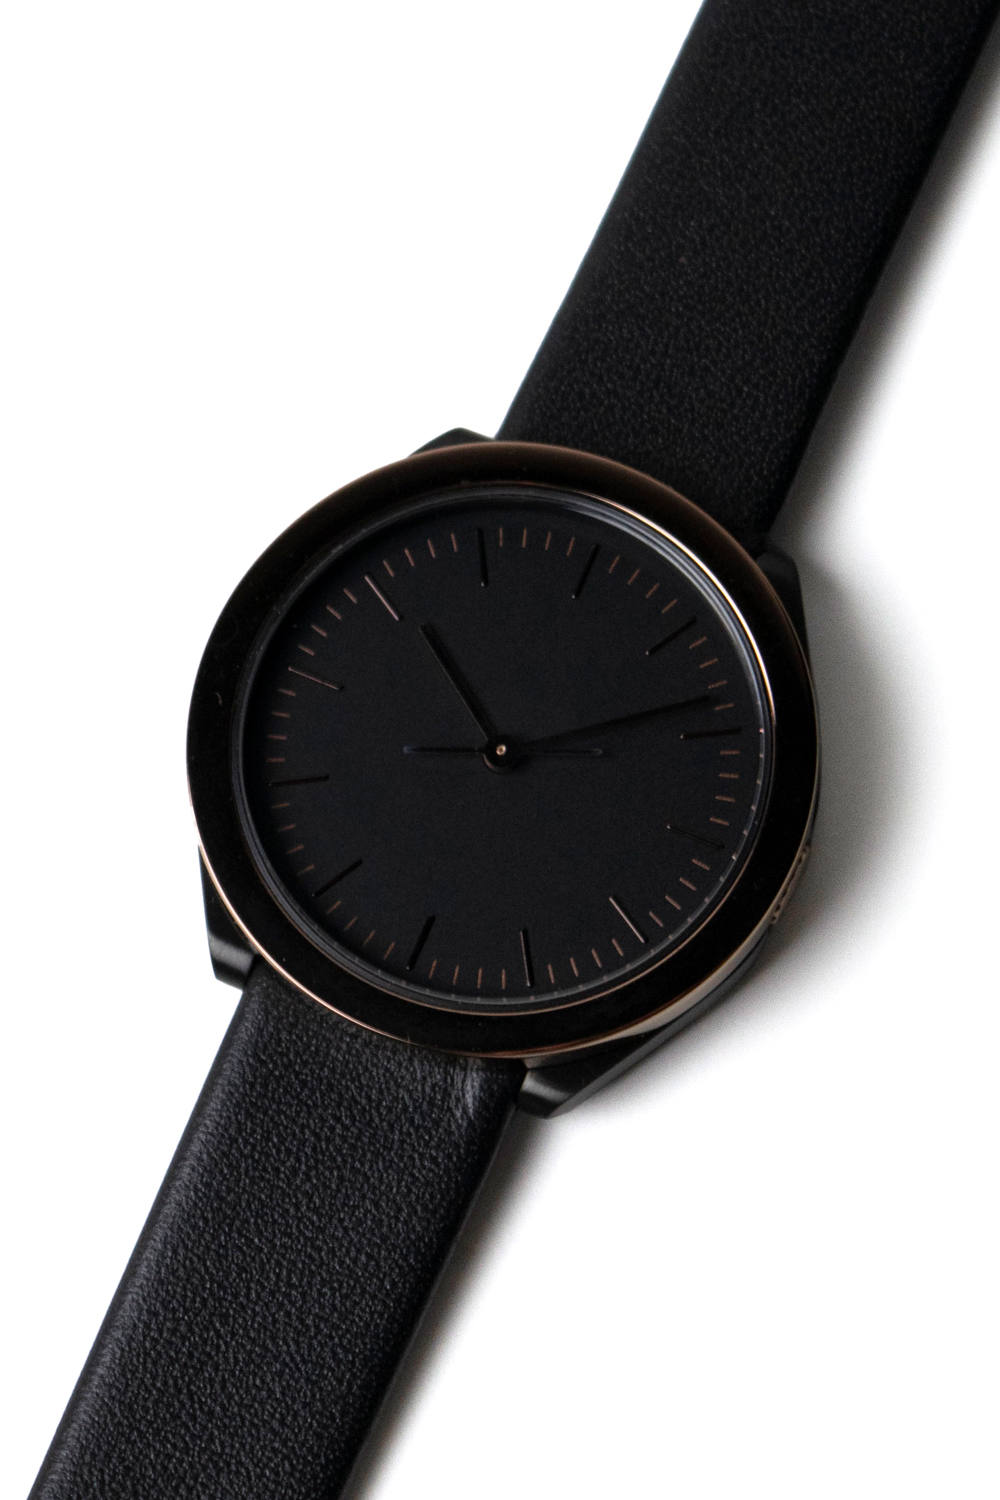 日々 / HIBI FOR WOMEN - BLACK [32mm]